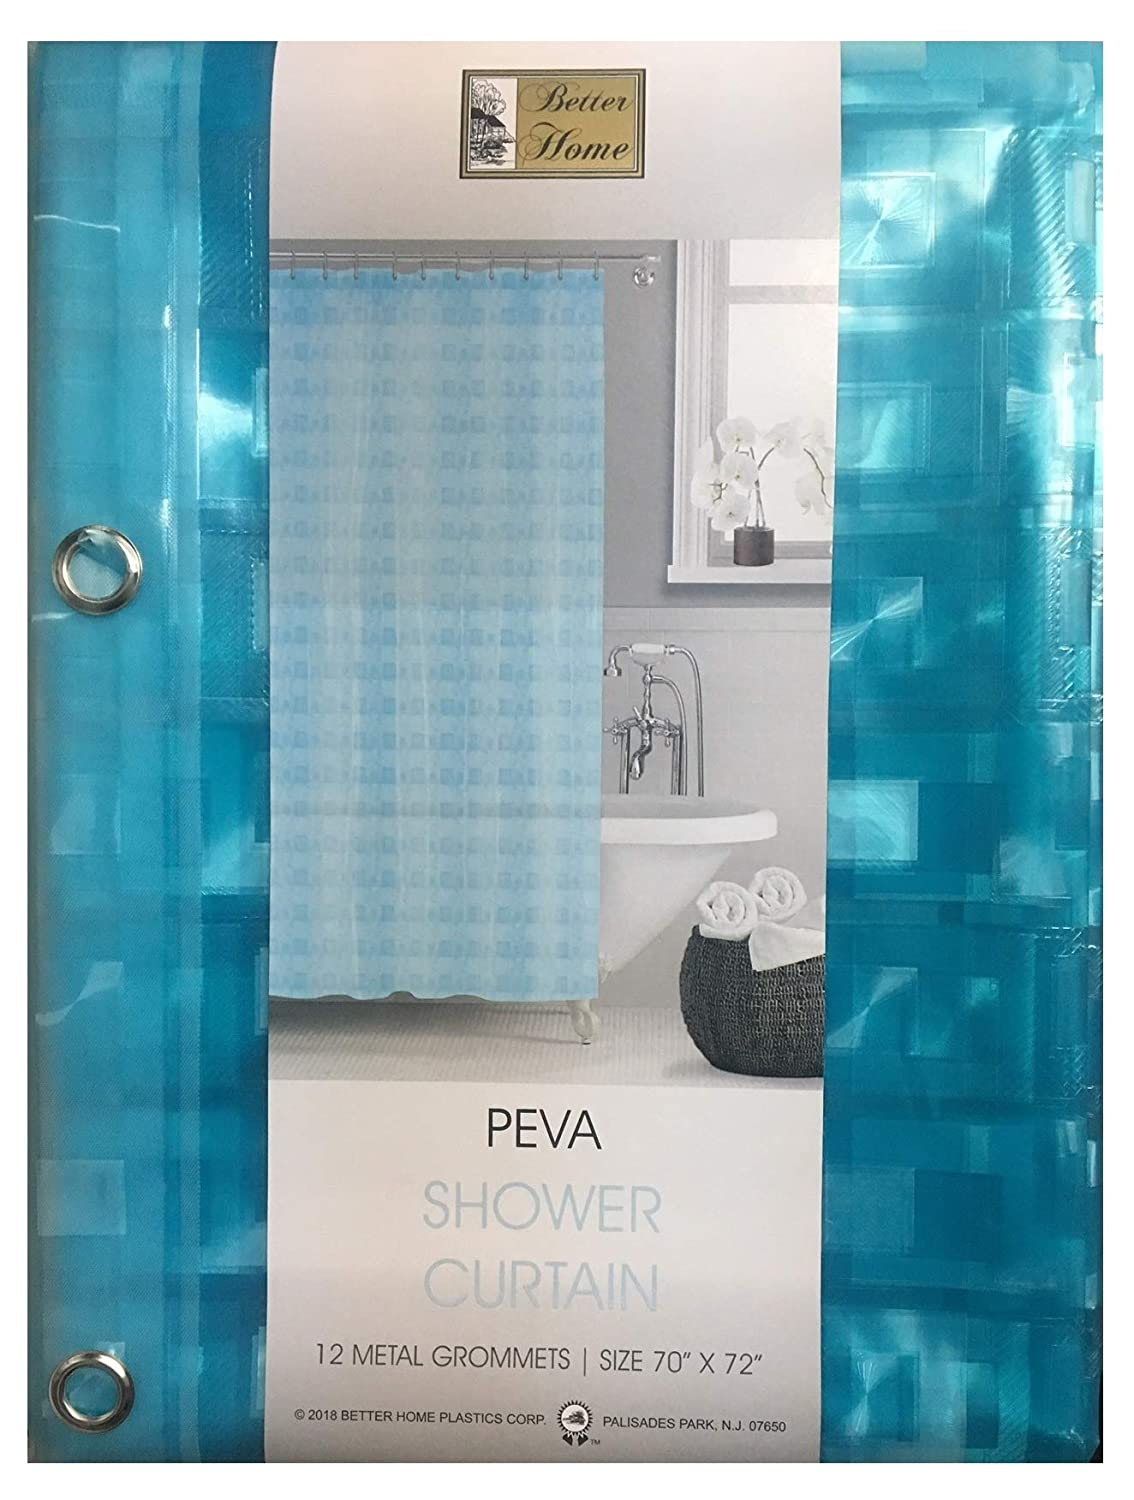 70 by 72 Inch Blue Better Home PEVA Shower Curtain Liner 3D Effect Design Decorative Bath Curtain or Liner Waterproof Mildew Resistance